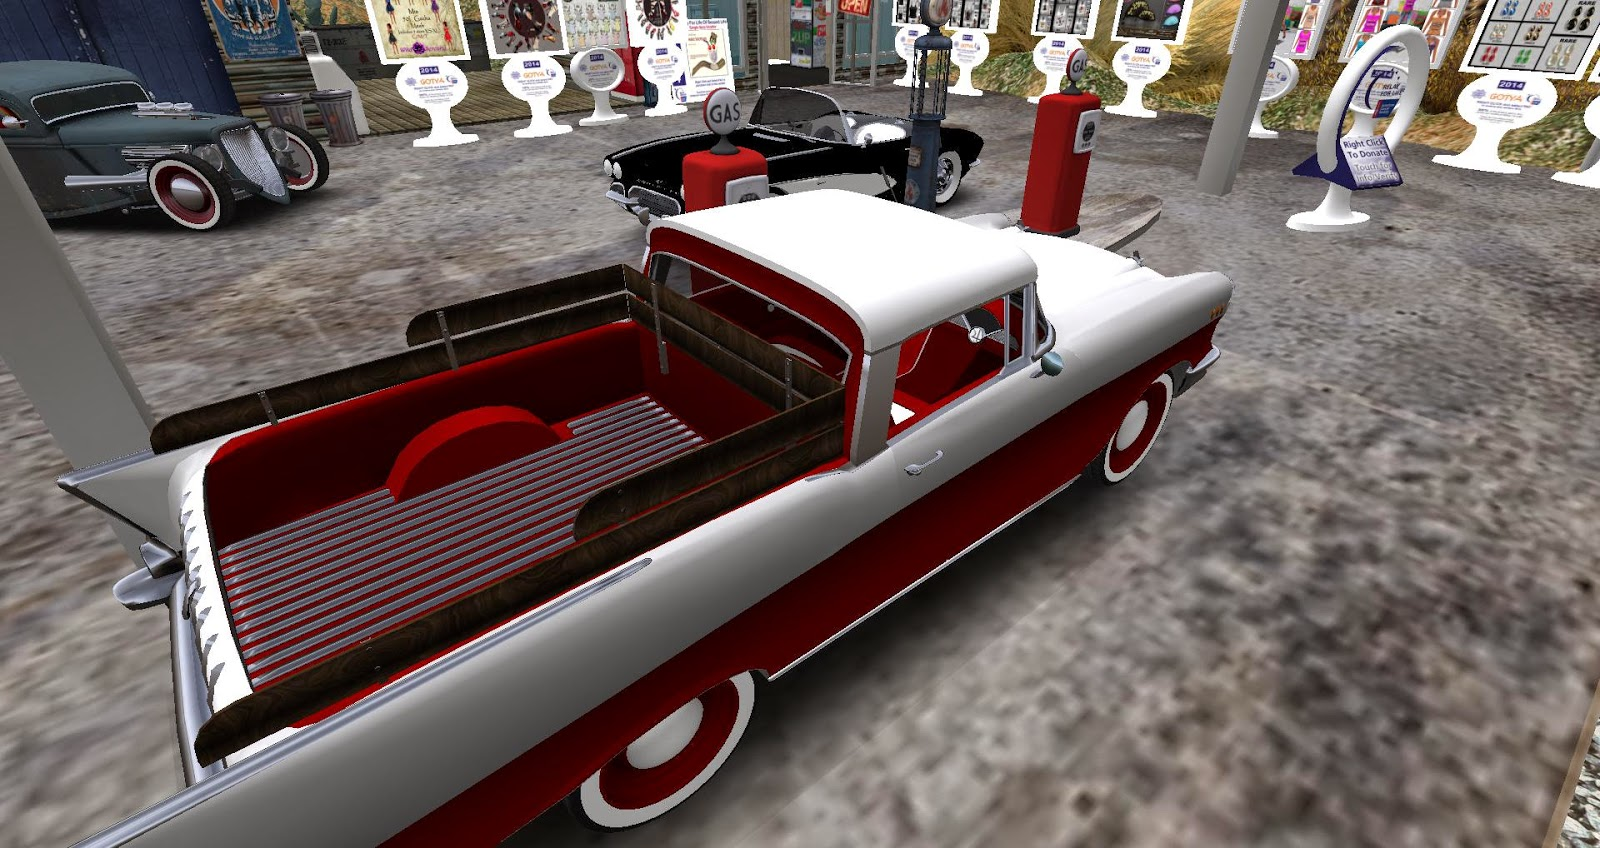 Chey's Second Life Blog: Way Too Cool Retro Cars at FFL!